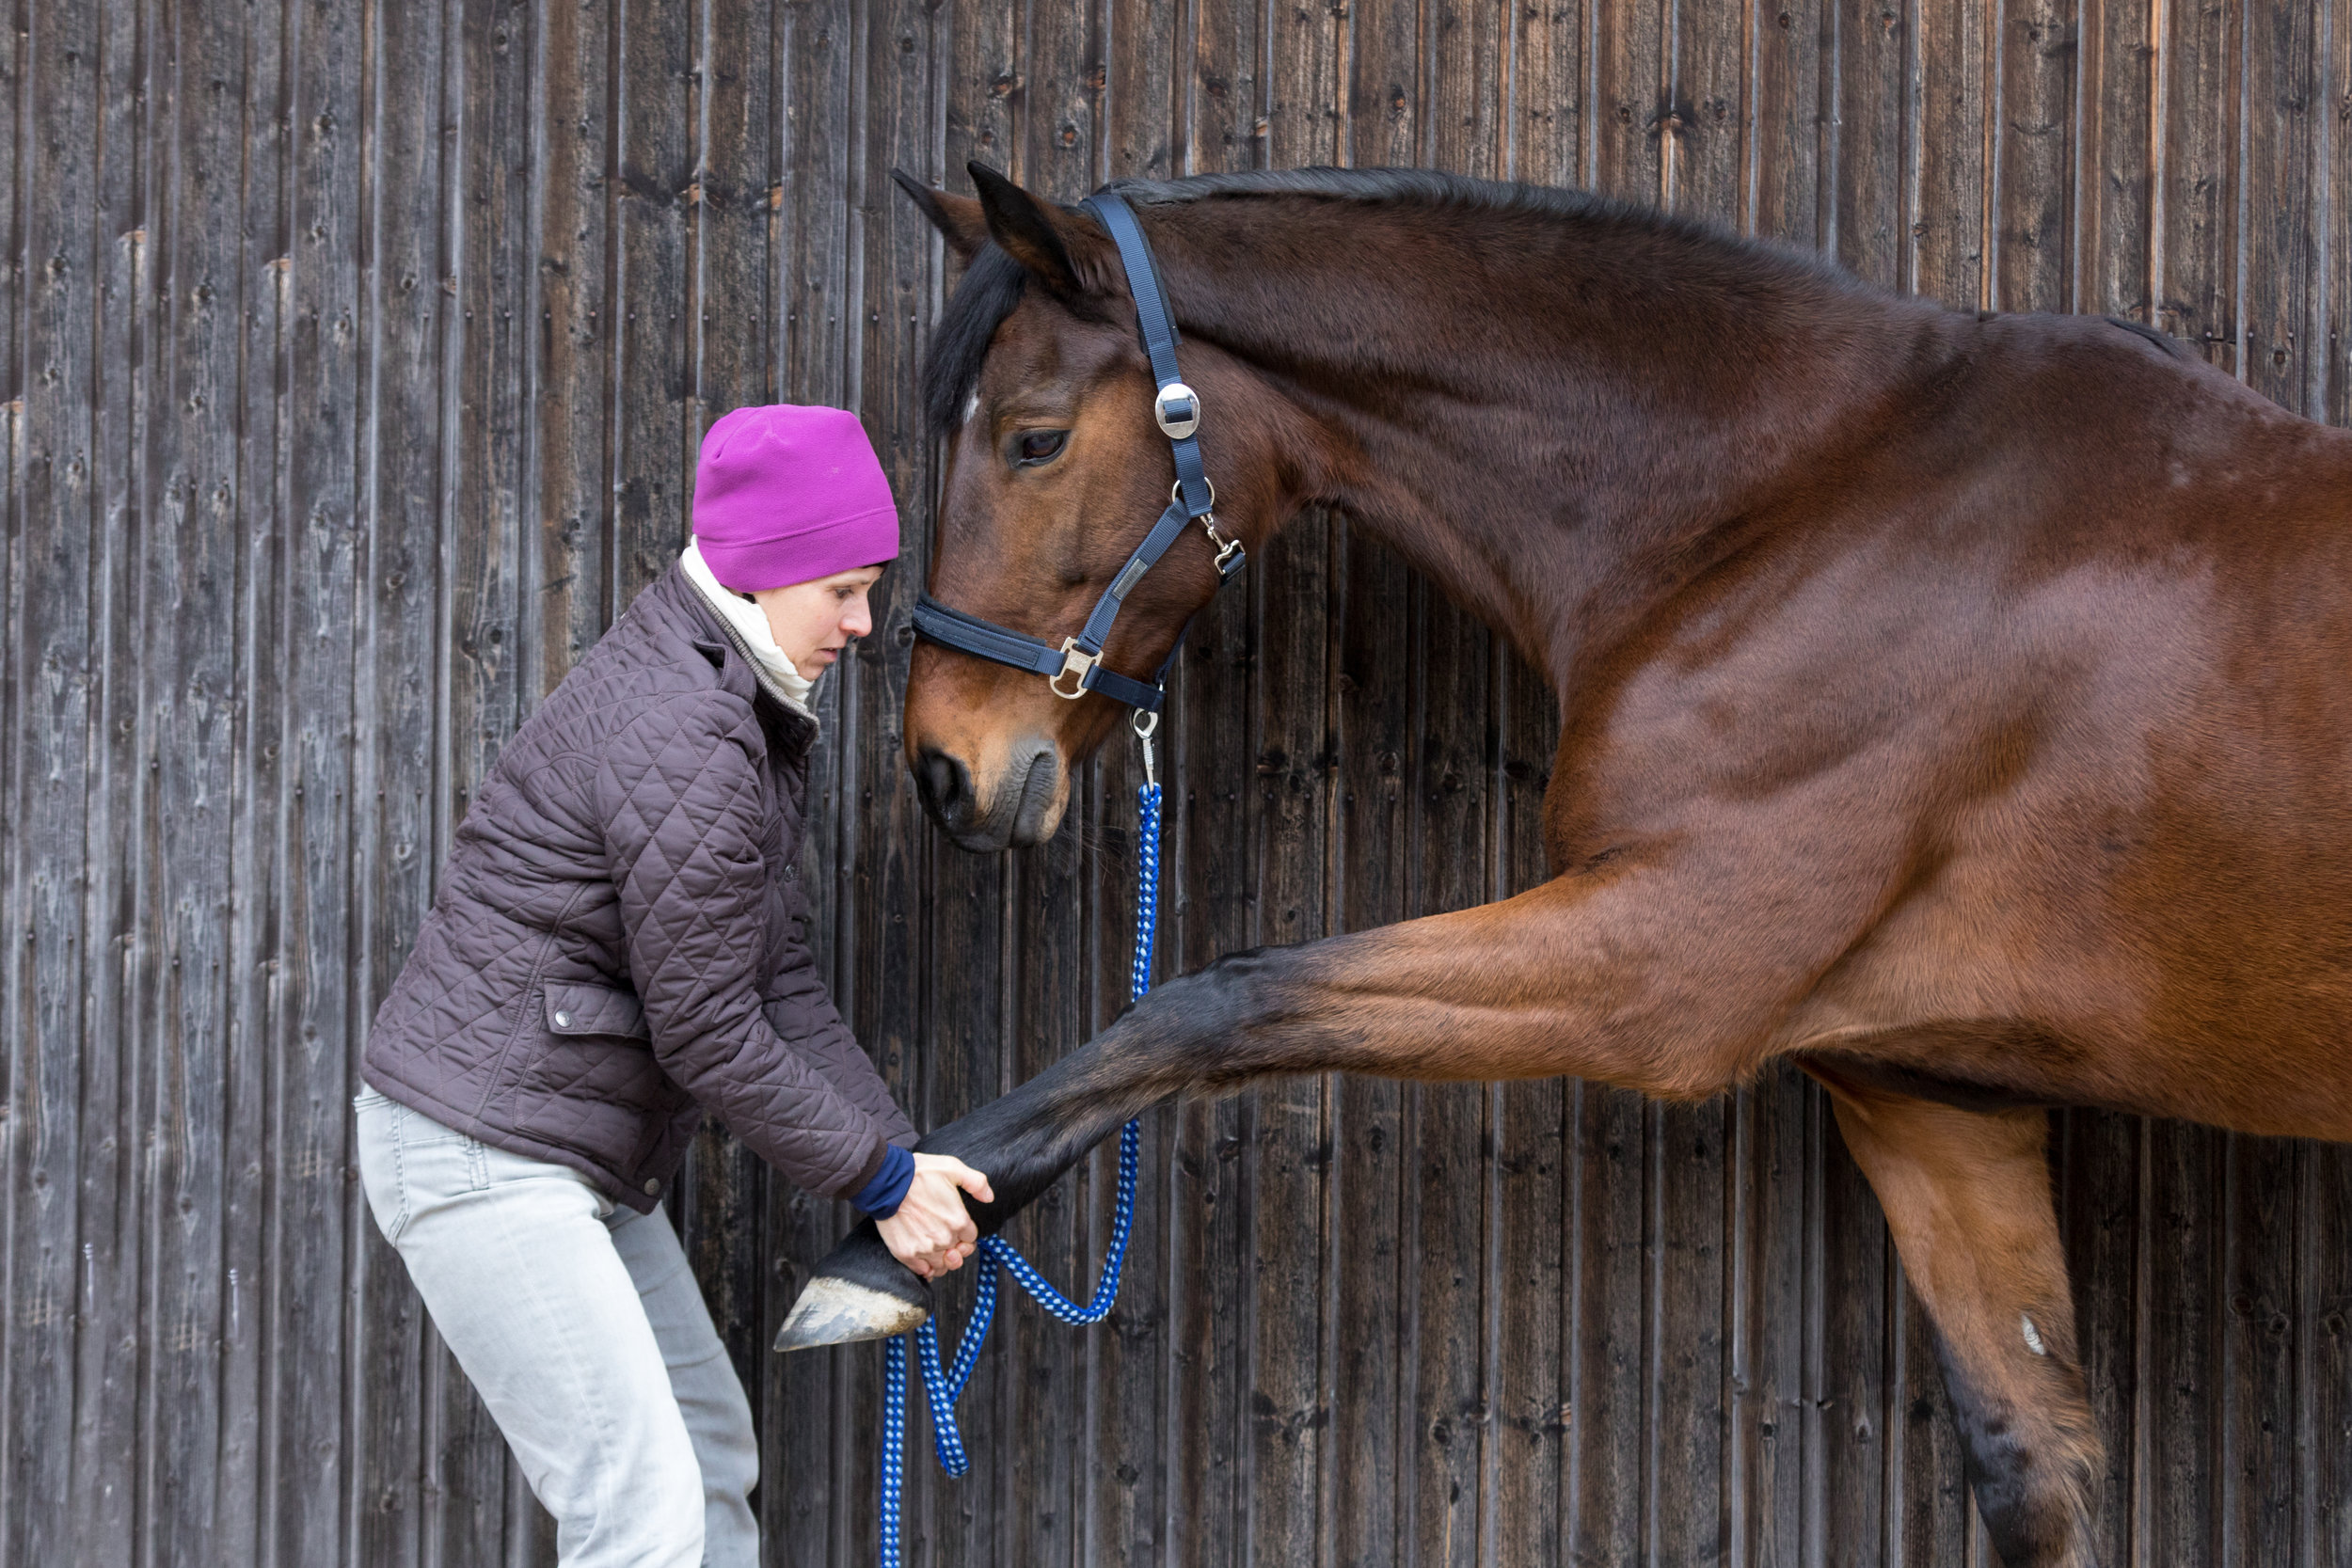 JHH Physio equine assessment